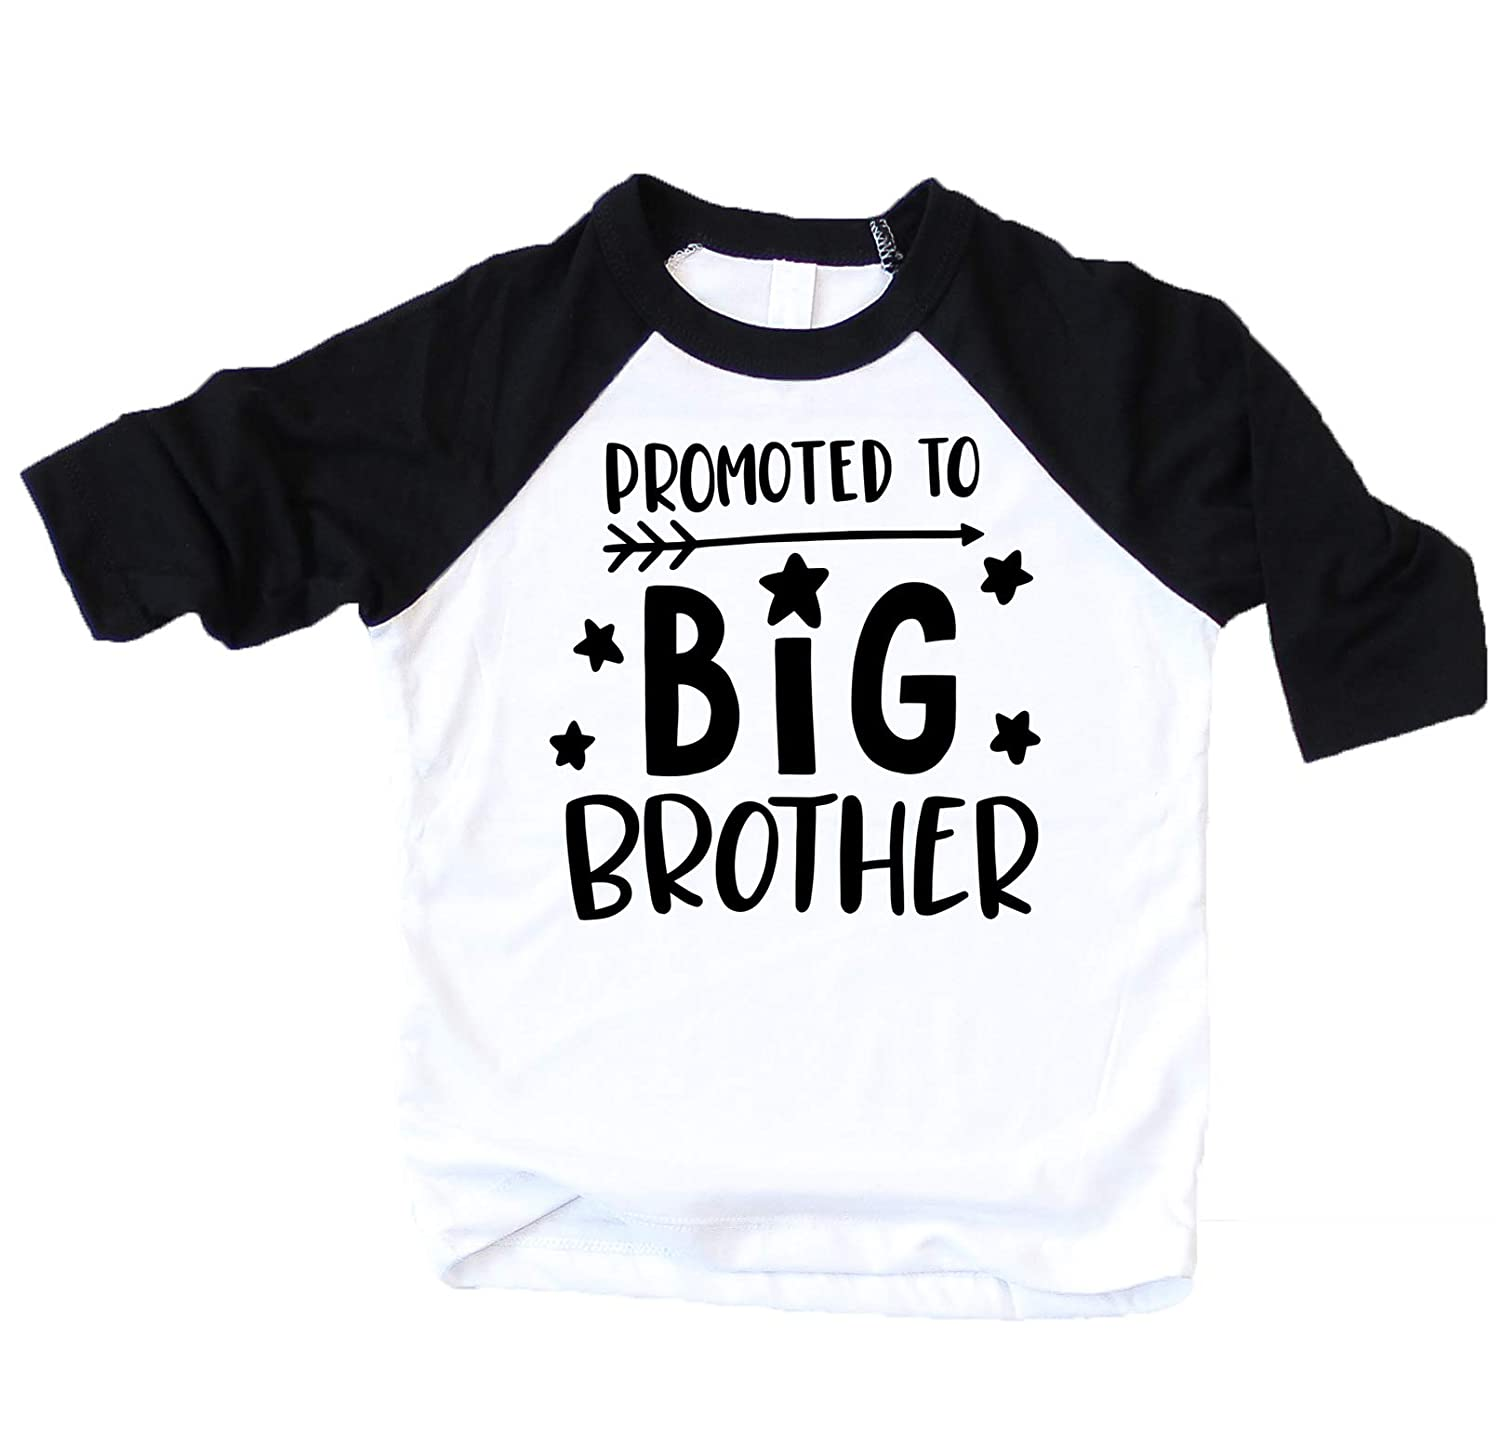 Promoted to Big Brother Gender Reveal Shirt for Sibling Brother Big Brother Shirt